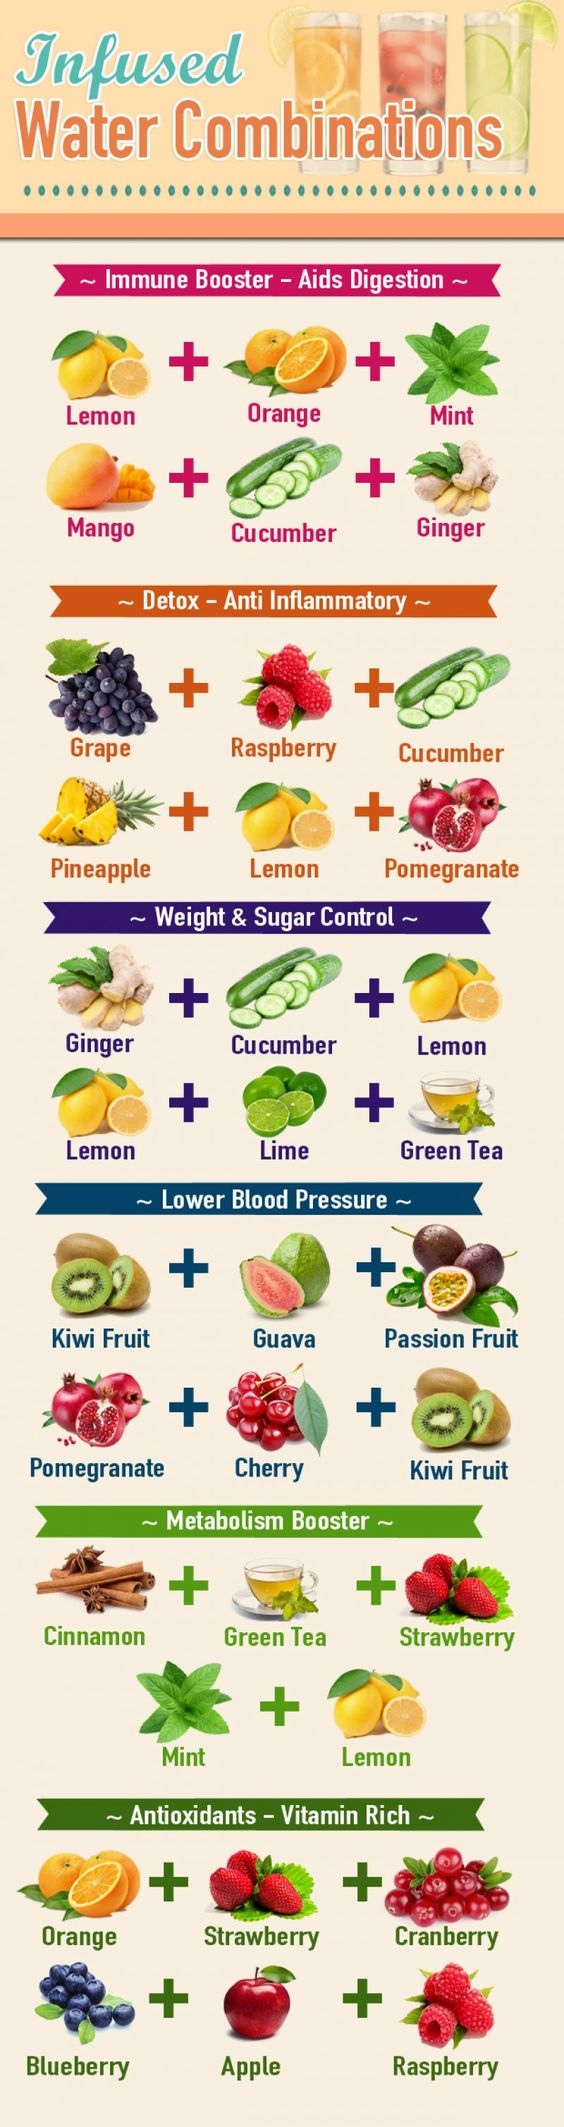 Fruit Infused Water Recipes that will get your day off to a great start Fruit Infused Water Recipes that will get your day off to a great start